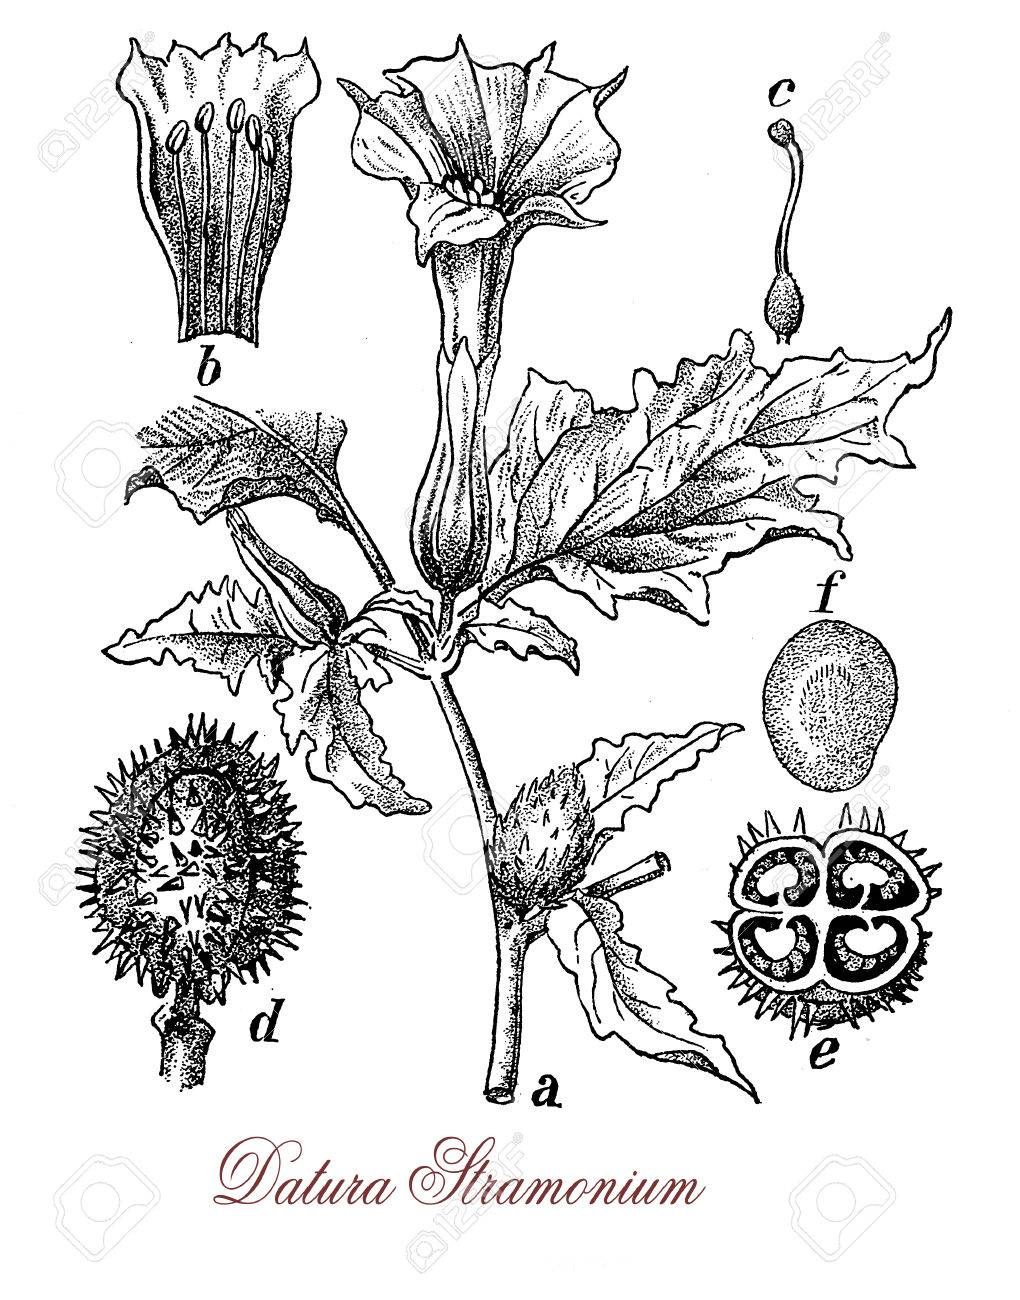 Vintage Illustration Of Datura Stramonium With Trumpet Shaped